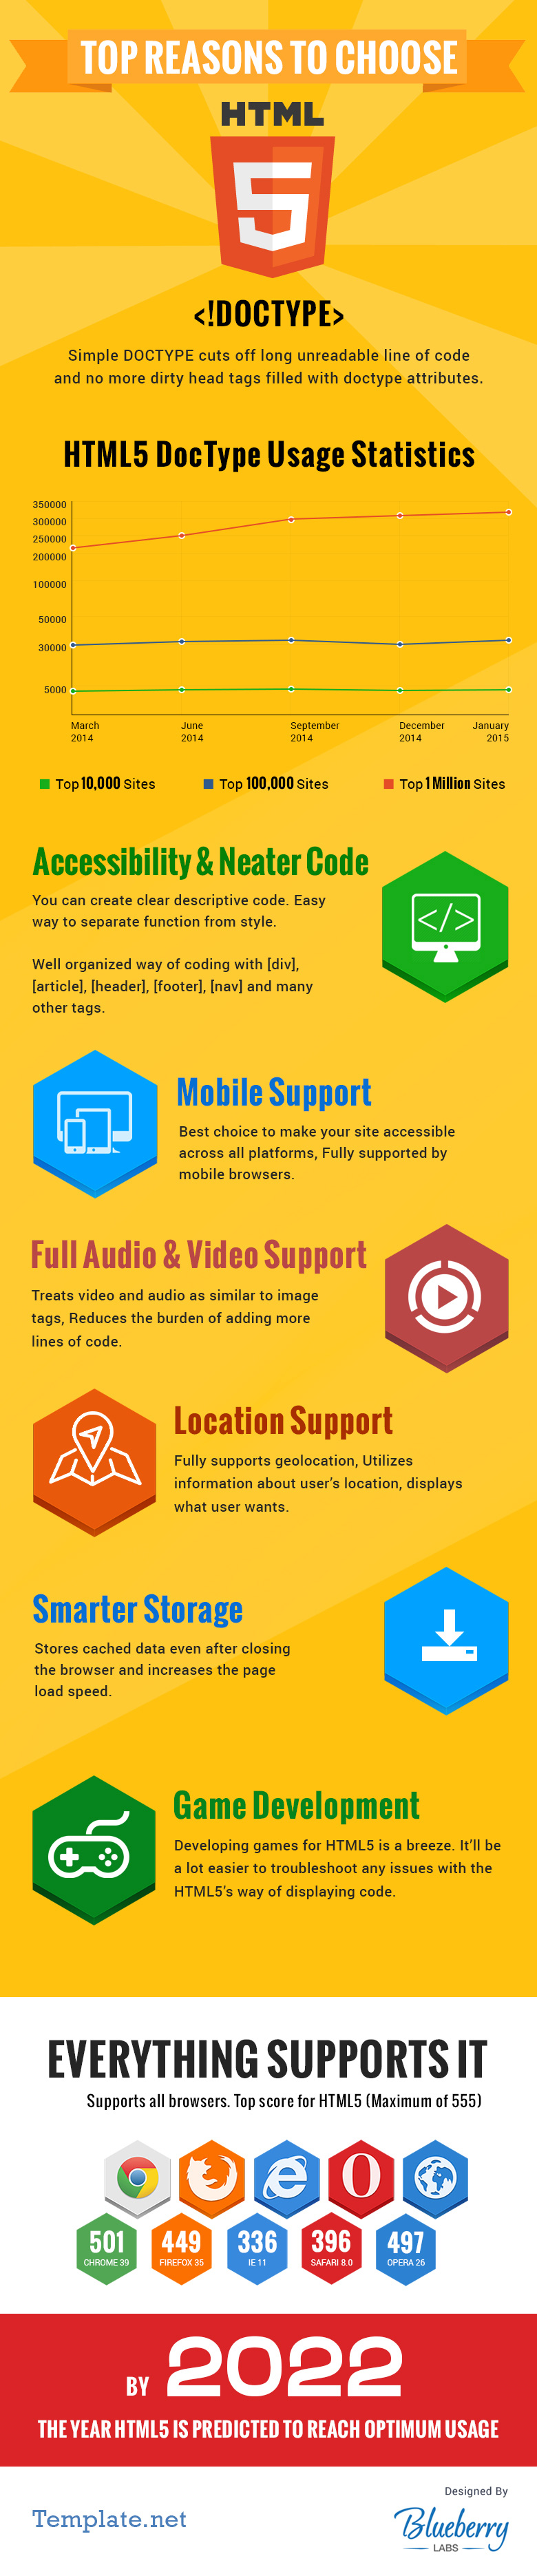 Top-Reasons-to-Choose-HTML5-DOCTYPE